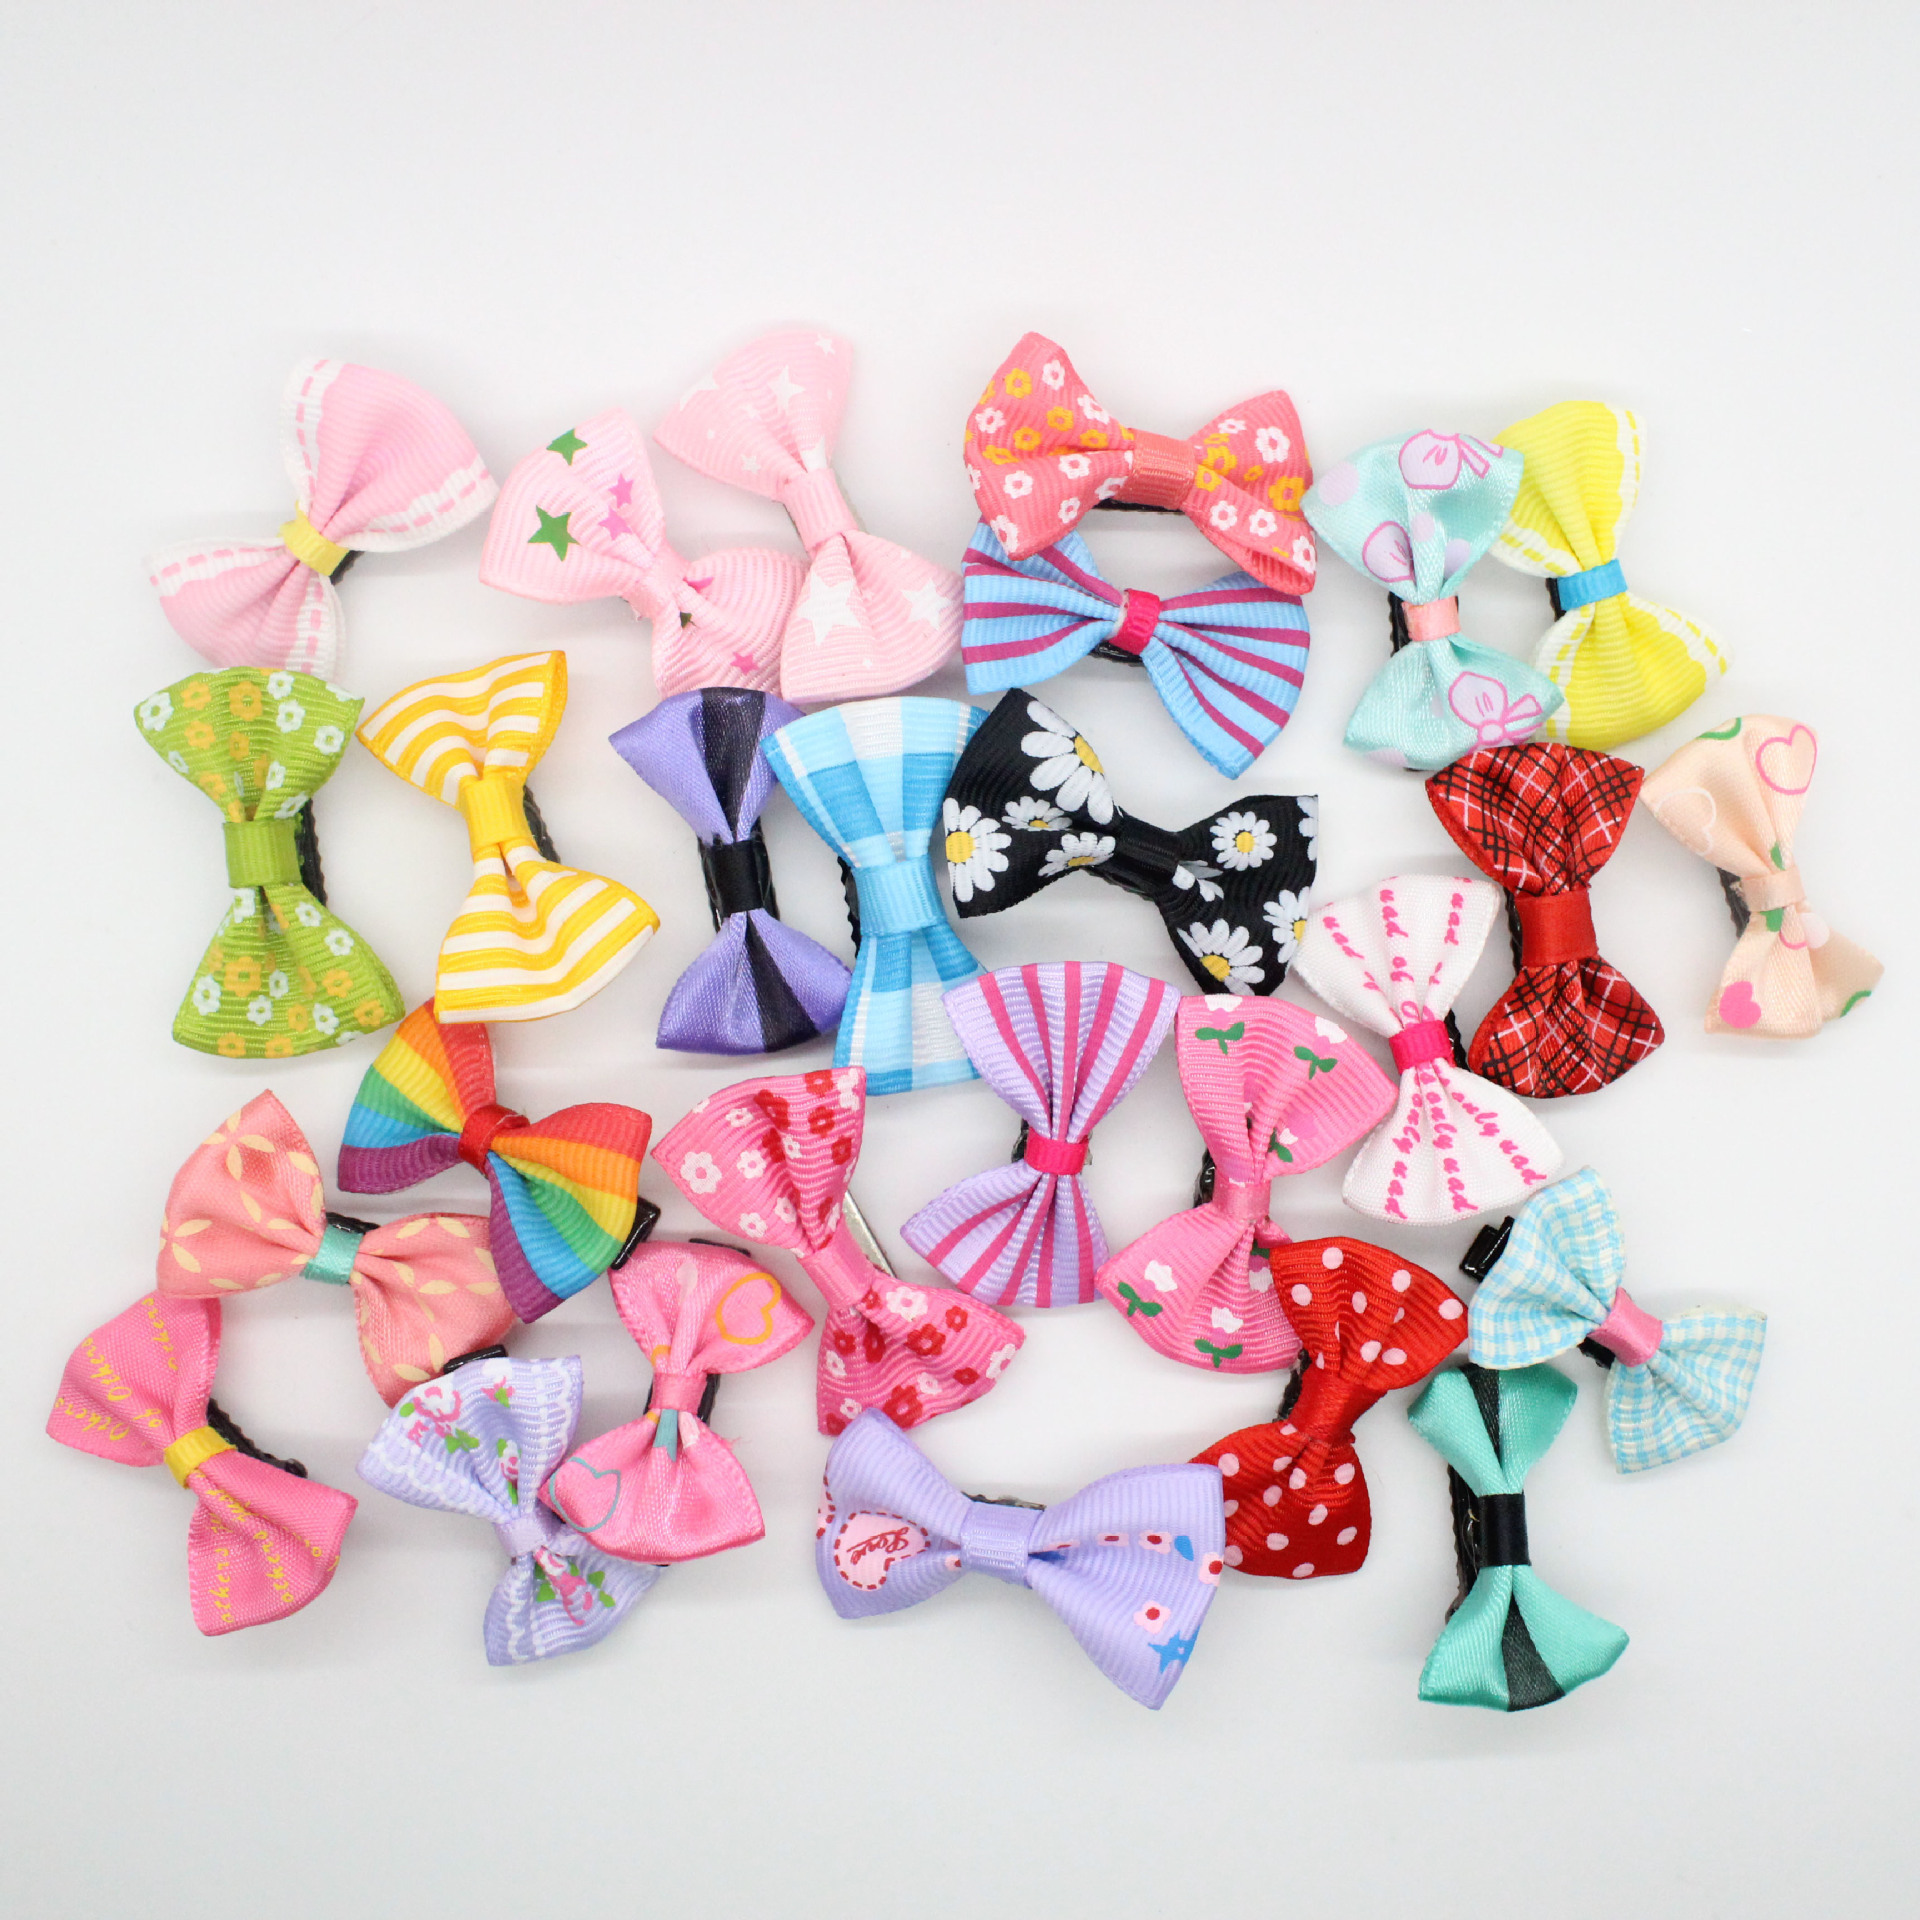 2017 New Fashion Girls Kids Candy Color Dot Flower Print Ribbon Bow Hairpin Hair Clips Kids Hair Barrette Accessories Acrylic free shipping 10pcs lot new double satin bow hair clip rhinestone bowknot hairpin girls kids barrette